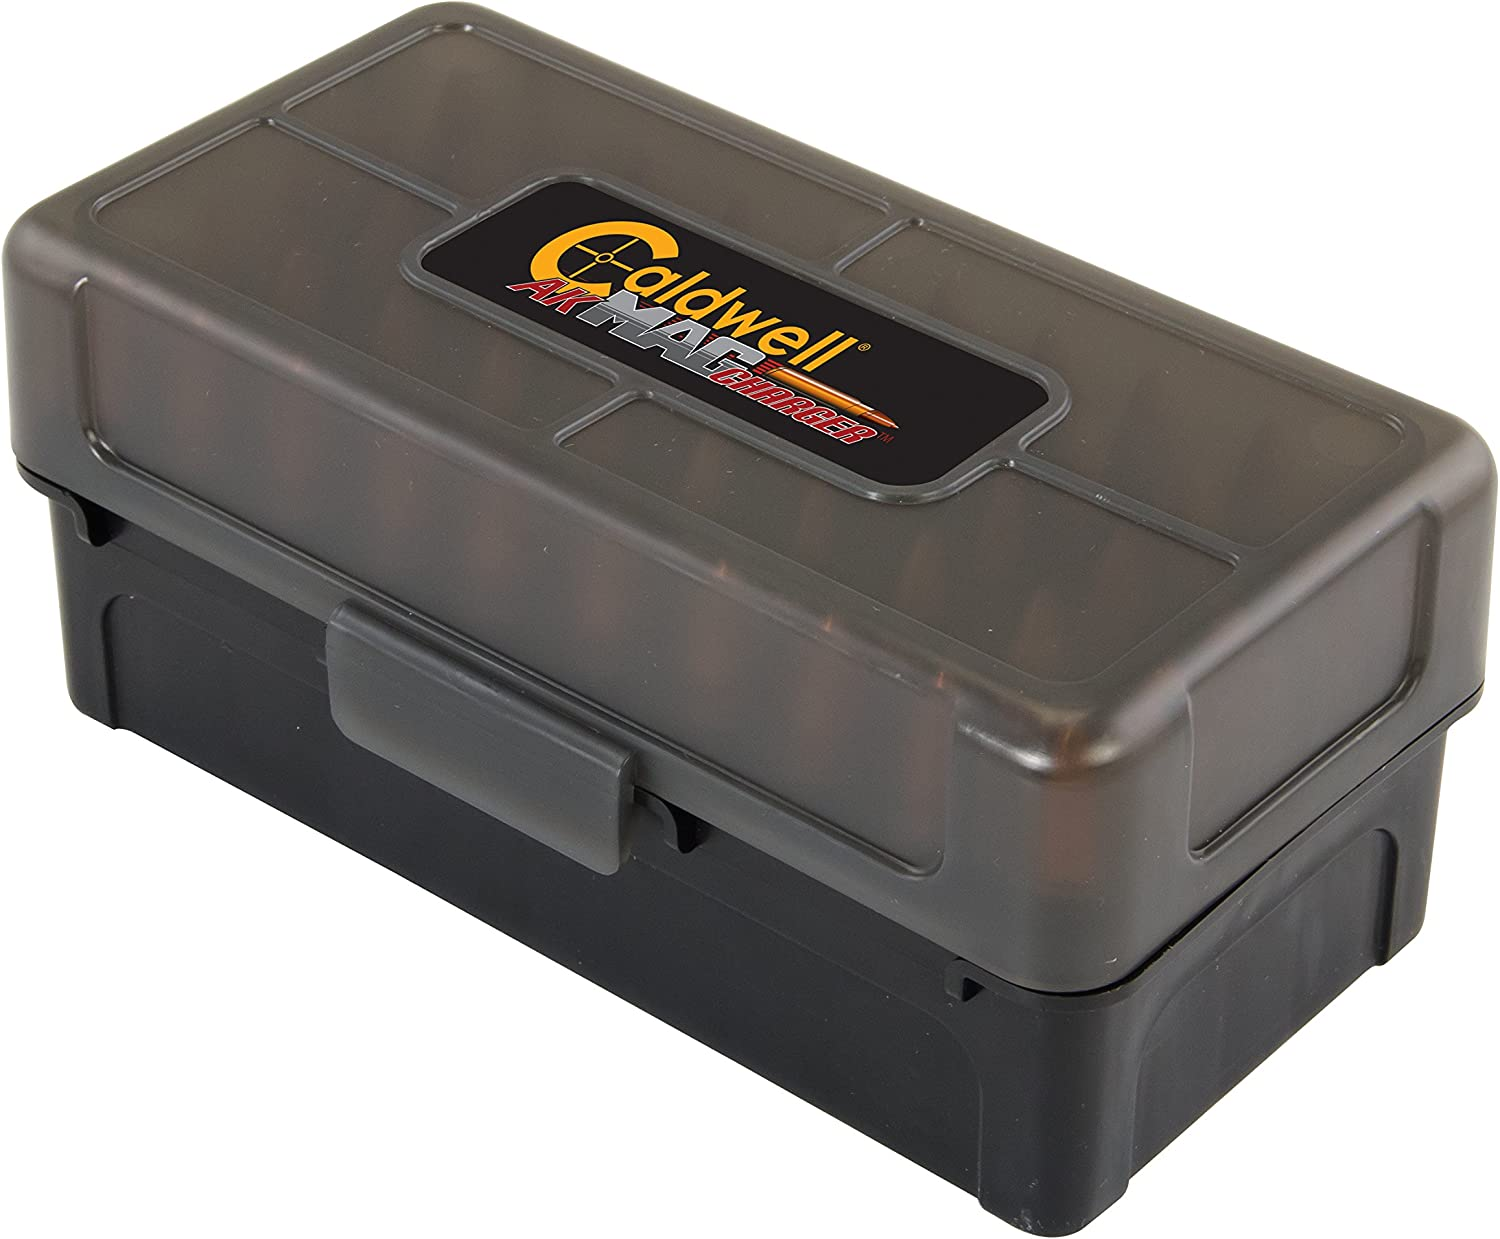 B00RPAGOAS Caldwell 7.62x39 Ammo Box with Removable Lid and Strong Construction for Outdoor, Range, Shooting, Competition and Reloading, 5 Pack 819yGrtFMnL